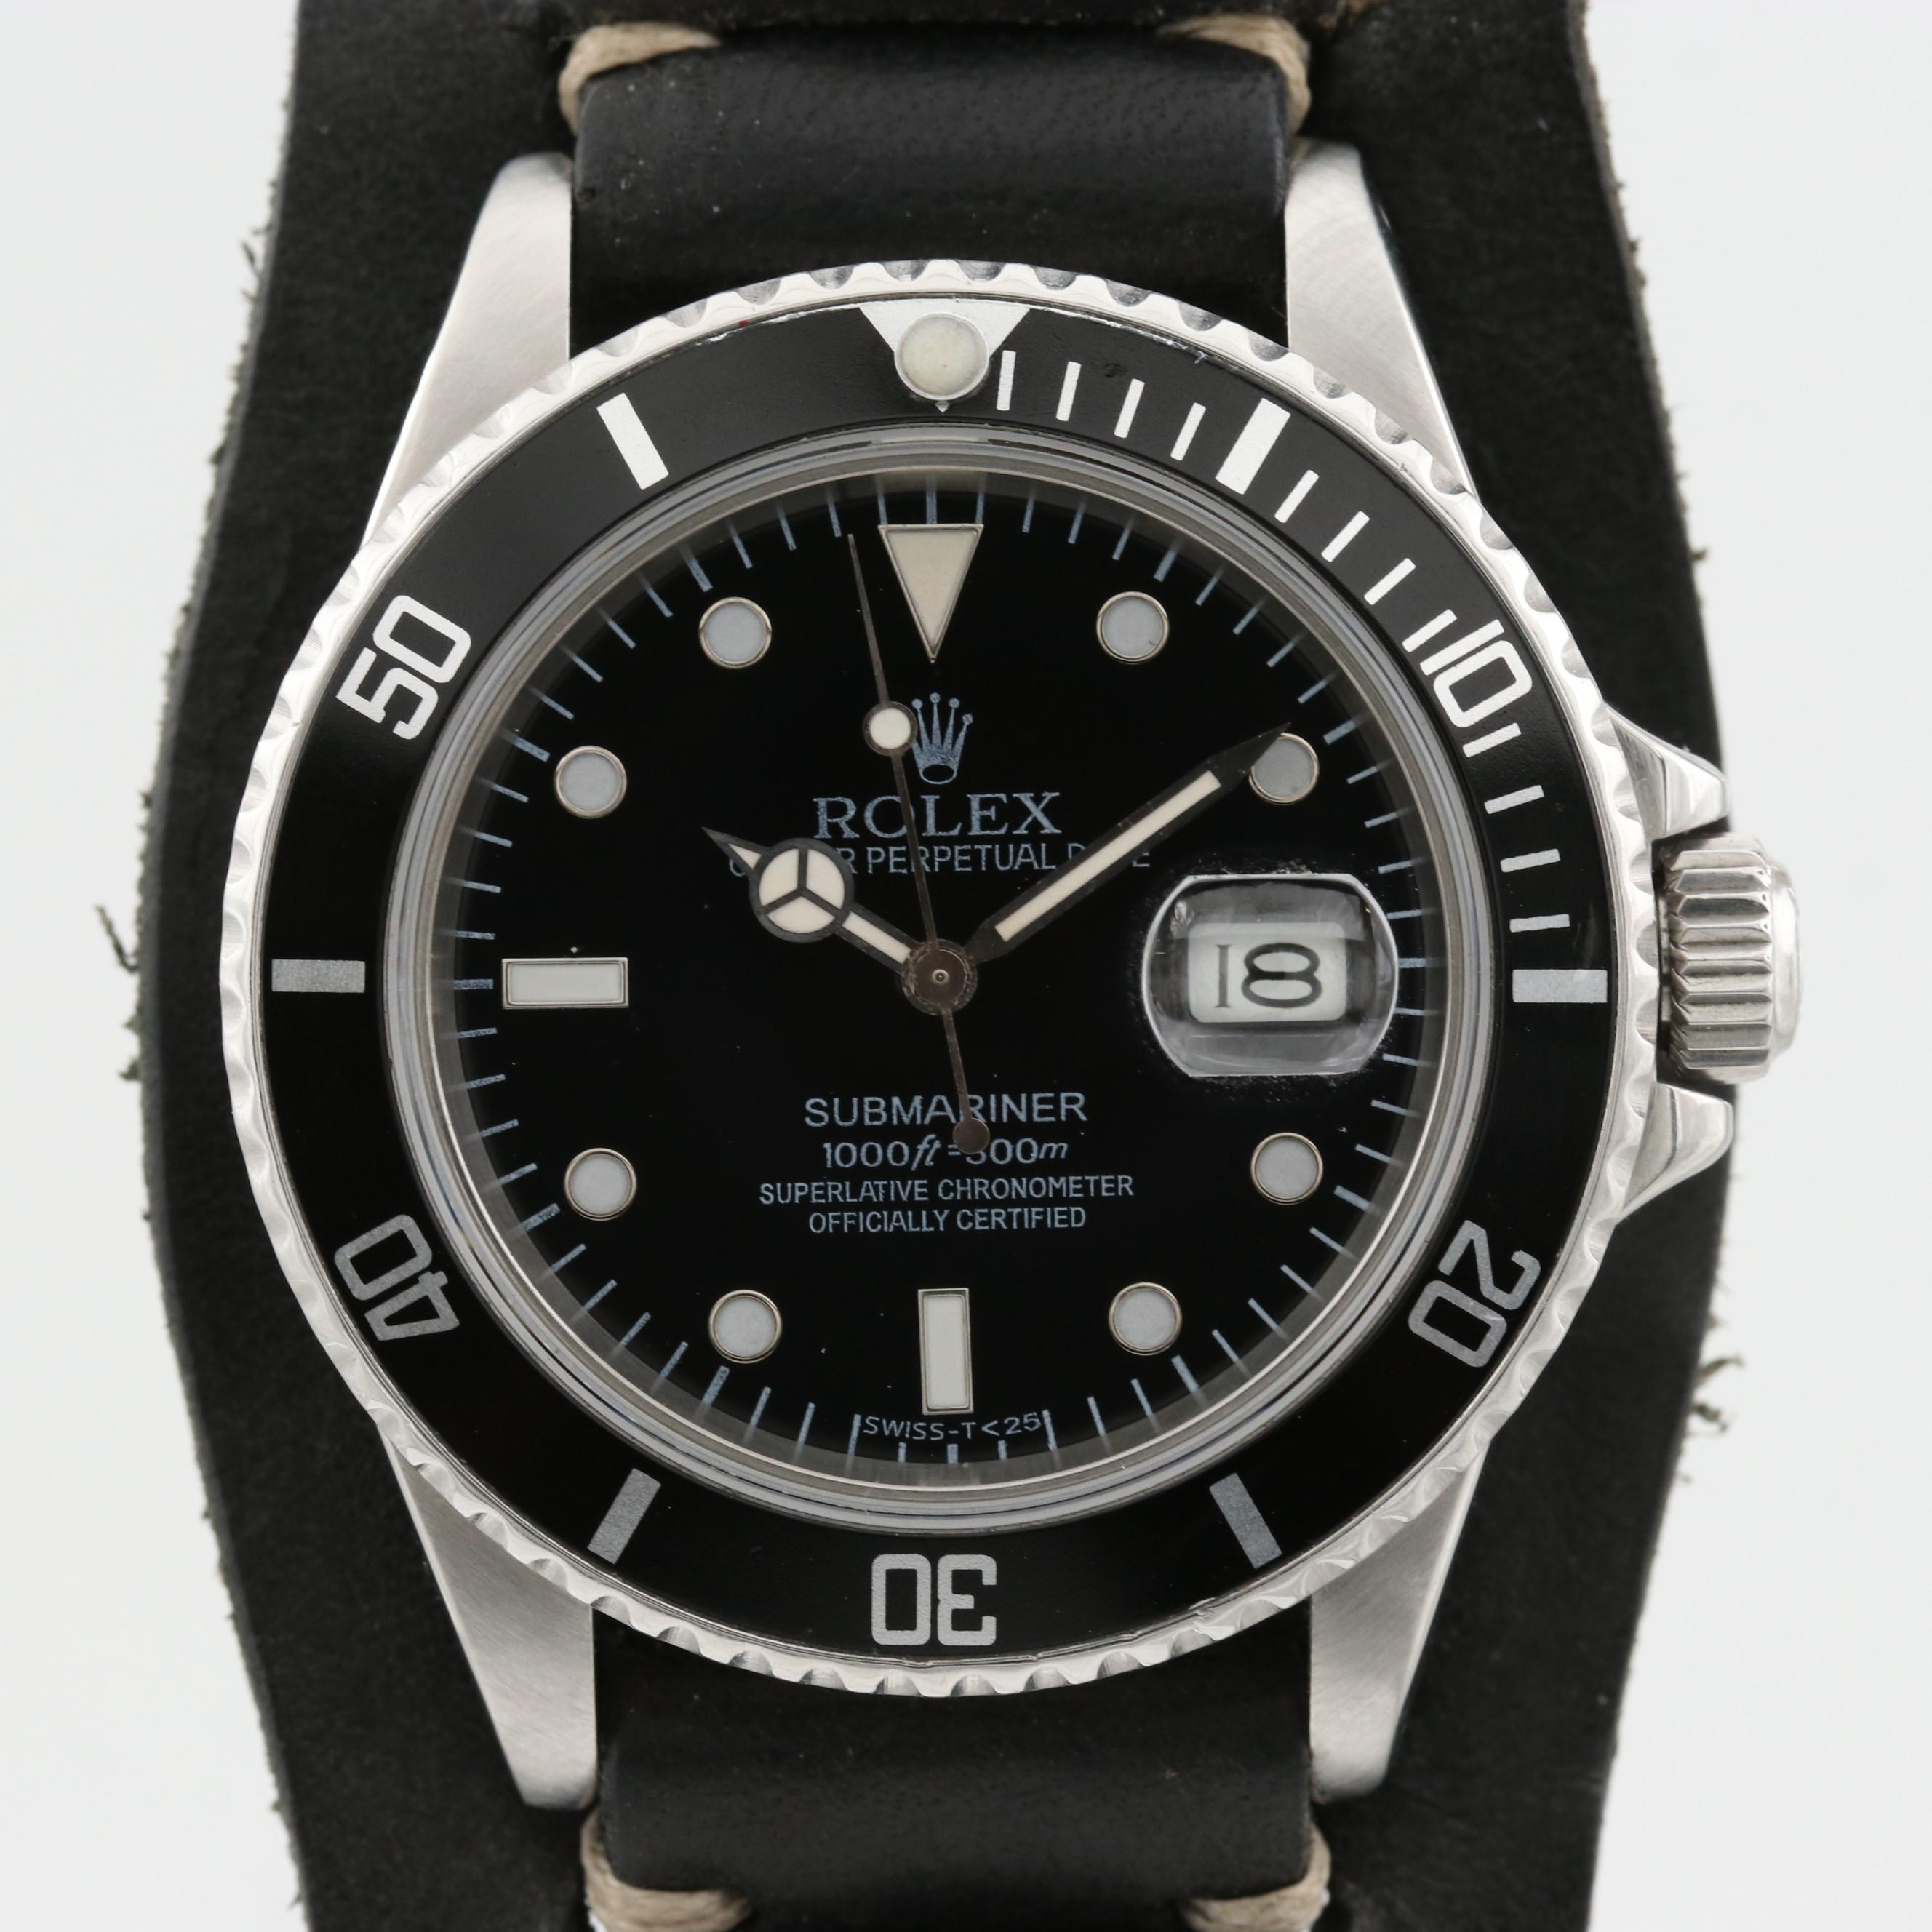 Rolex Submariner Stainless Steel Automatic Wristwatch, 1988